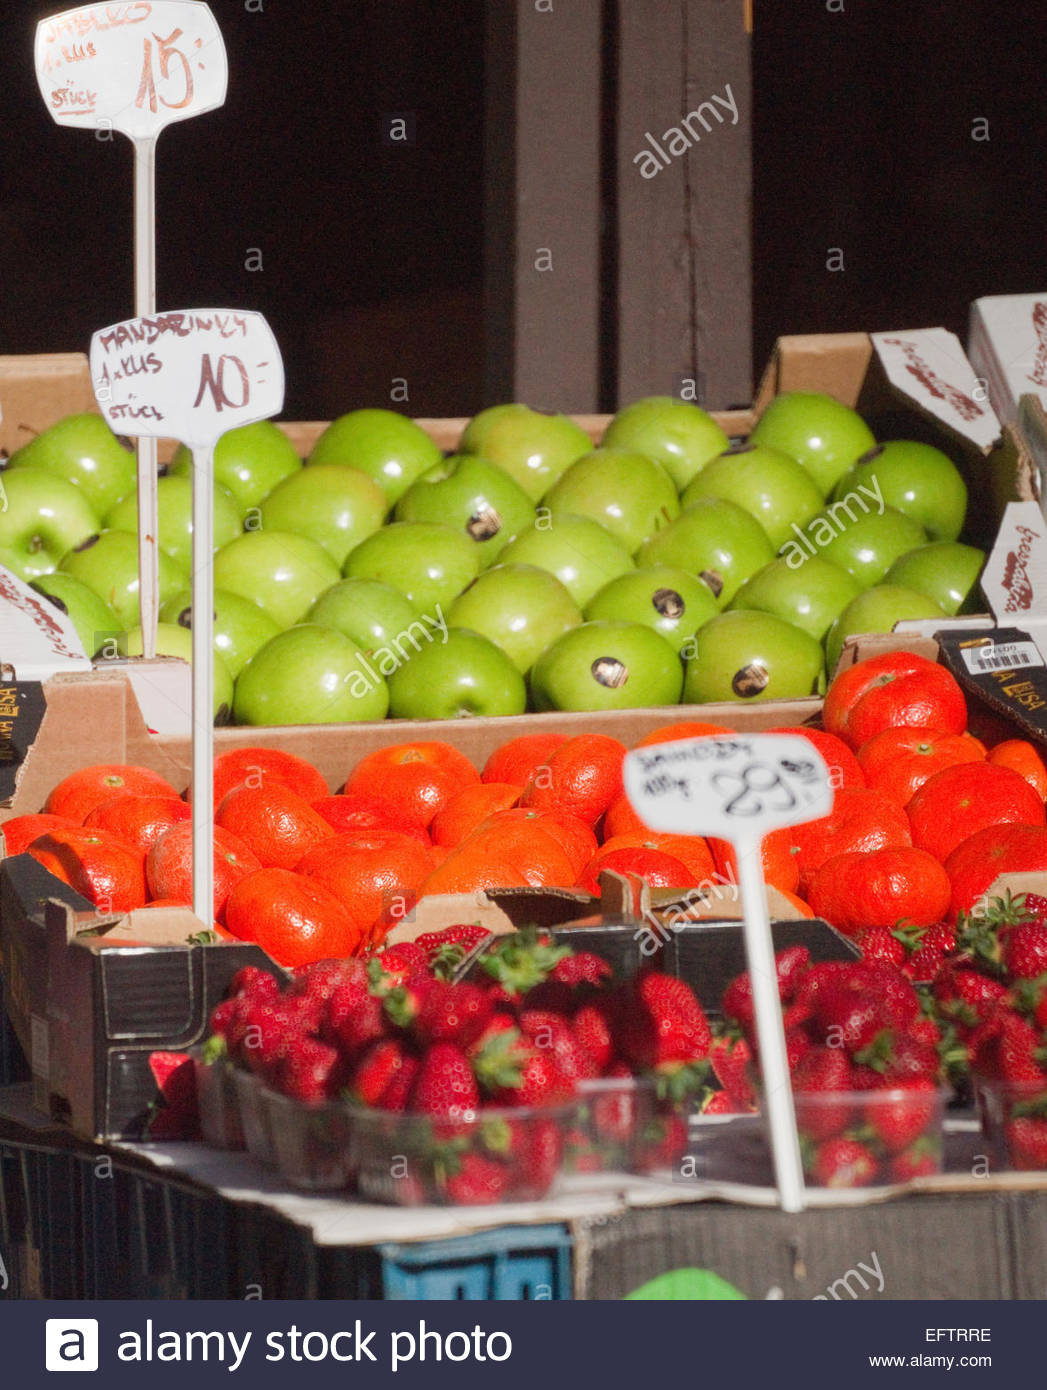 Prague Czech Republic Europe Nobody Shop Store Shopping Food And Drink Green Grocer Apples Fresh Fruits Tangerines Stock Photo